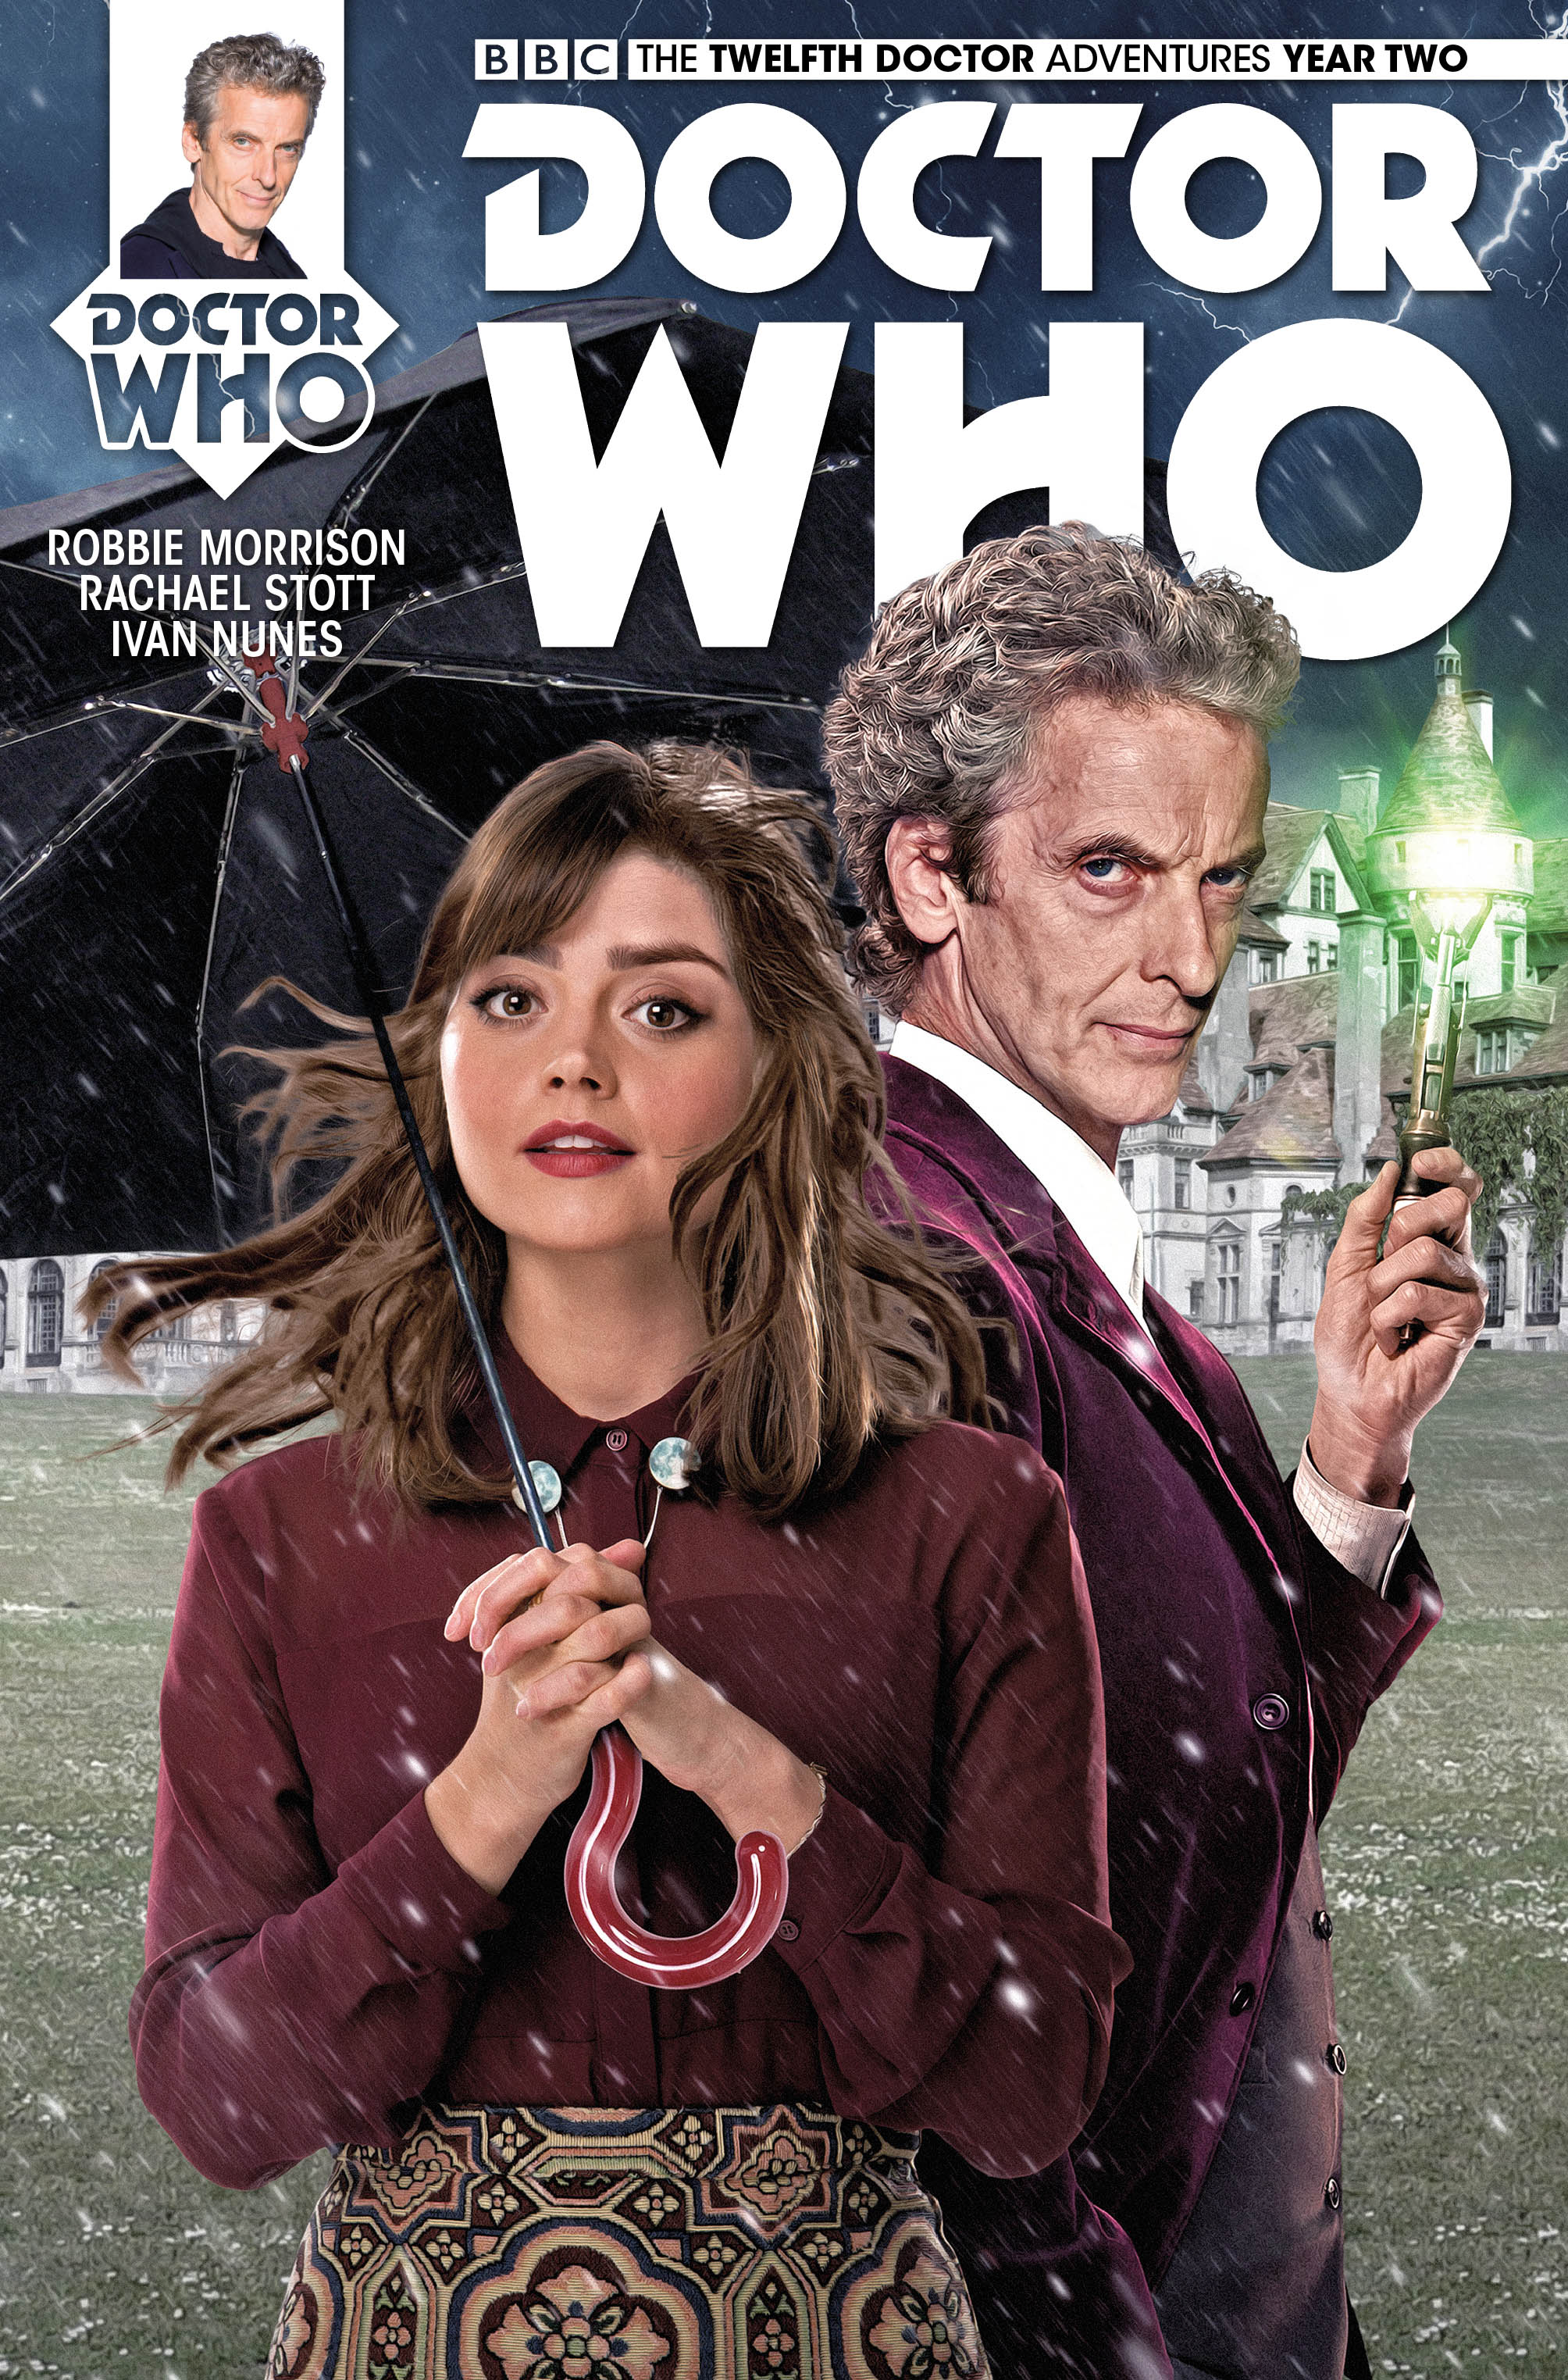 DOCTOR WHO: THE TWELFTH DOCTOR #2.2 (Credit: Titan)